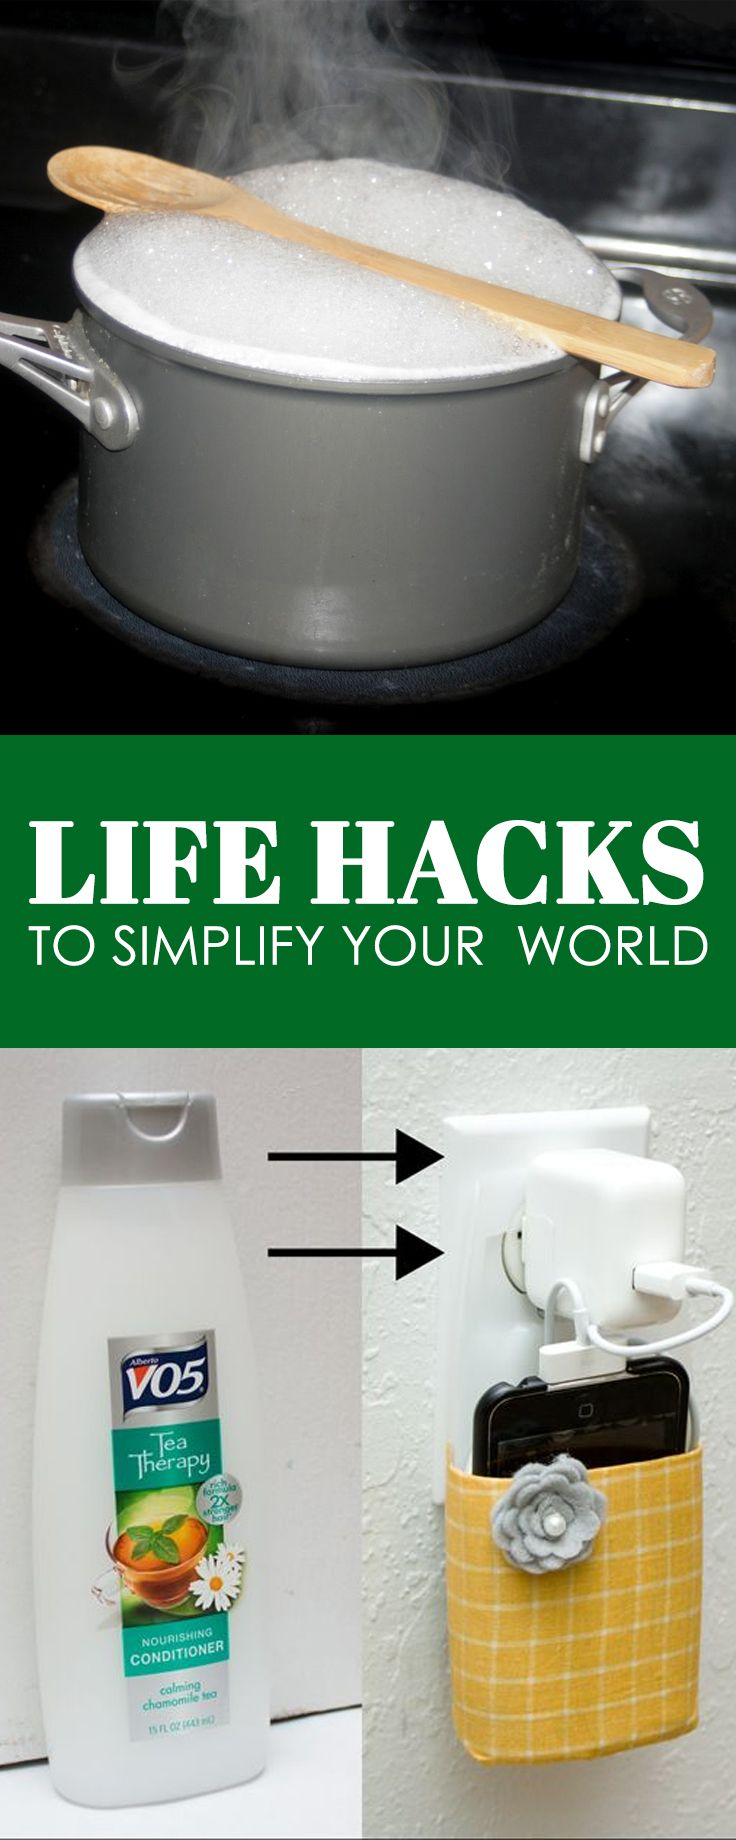 33 Brilliant Solutions To Everyday Problems To Simplify Your Life